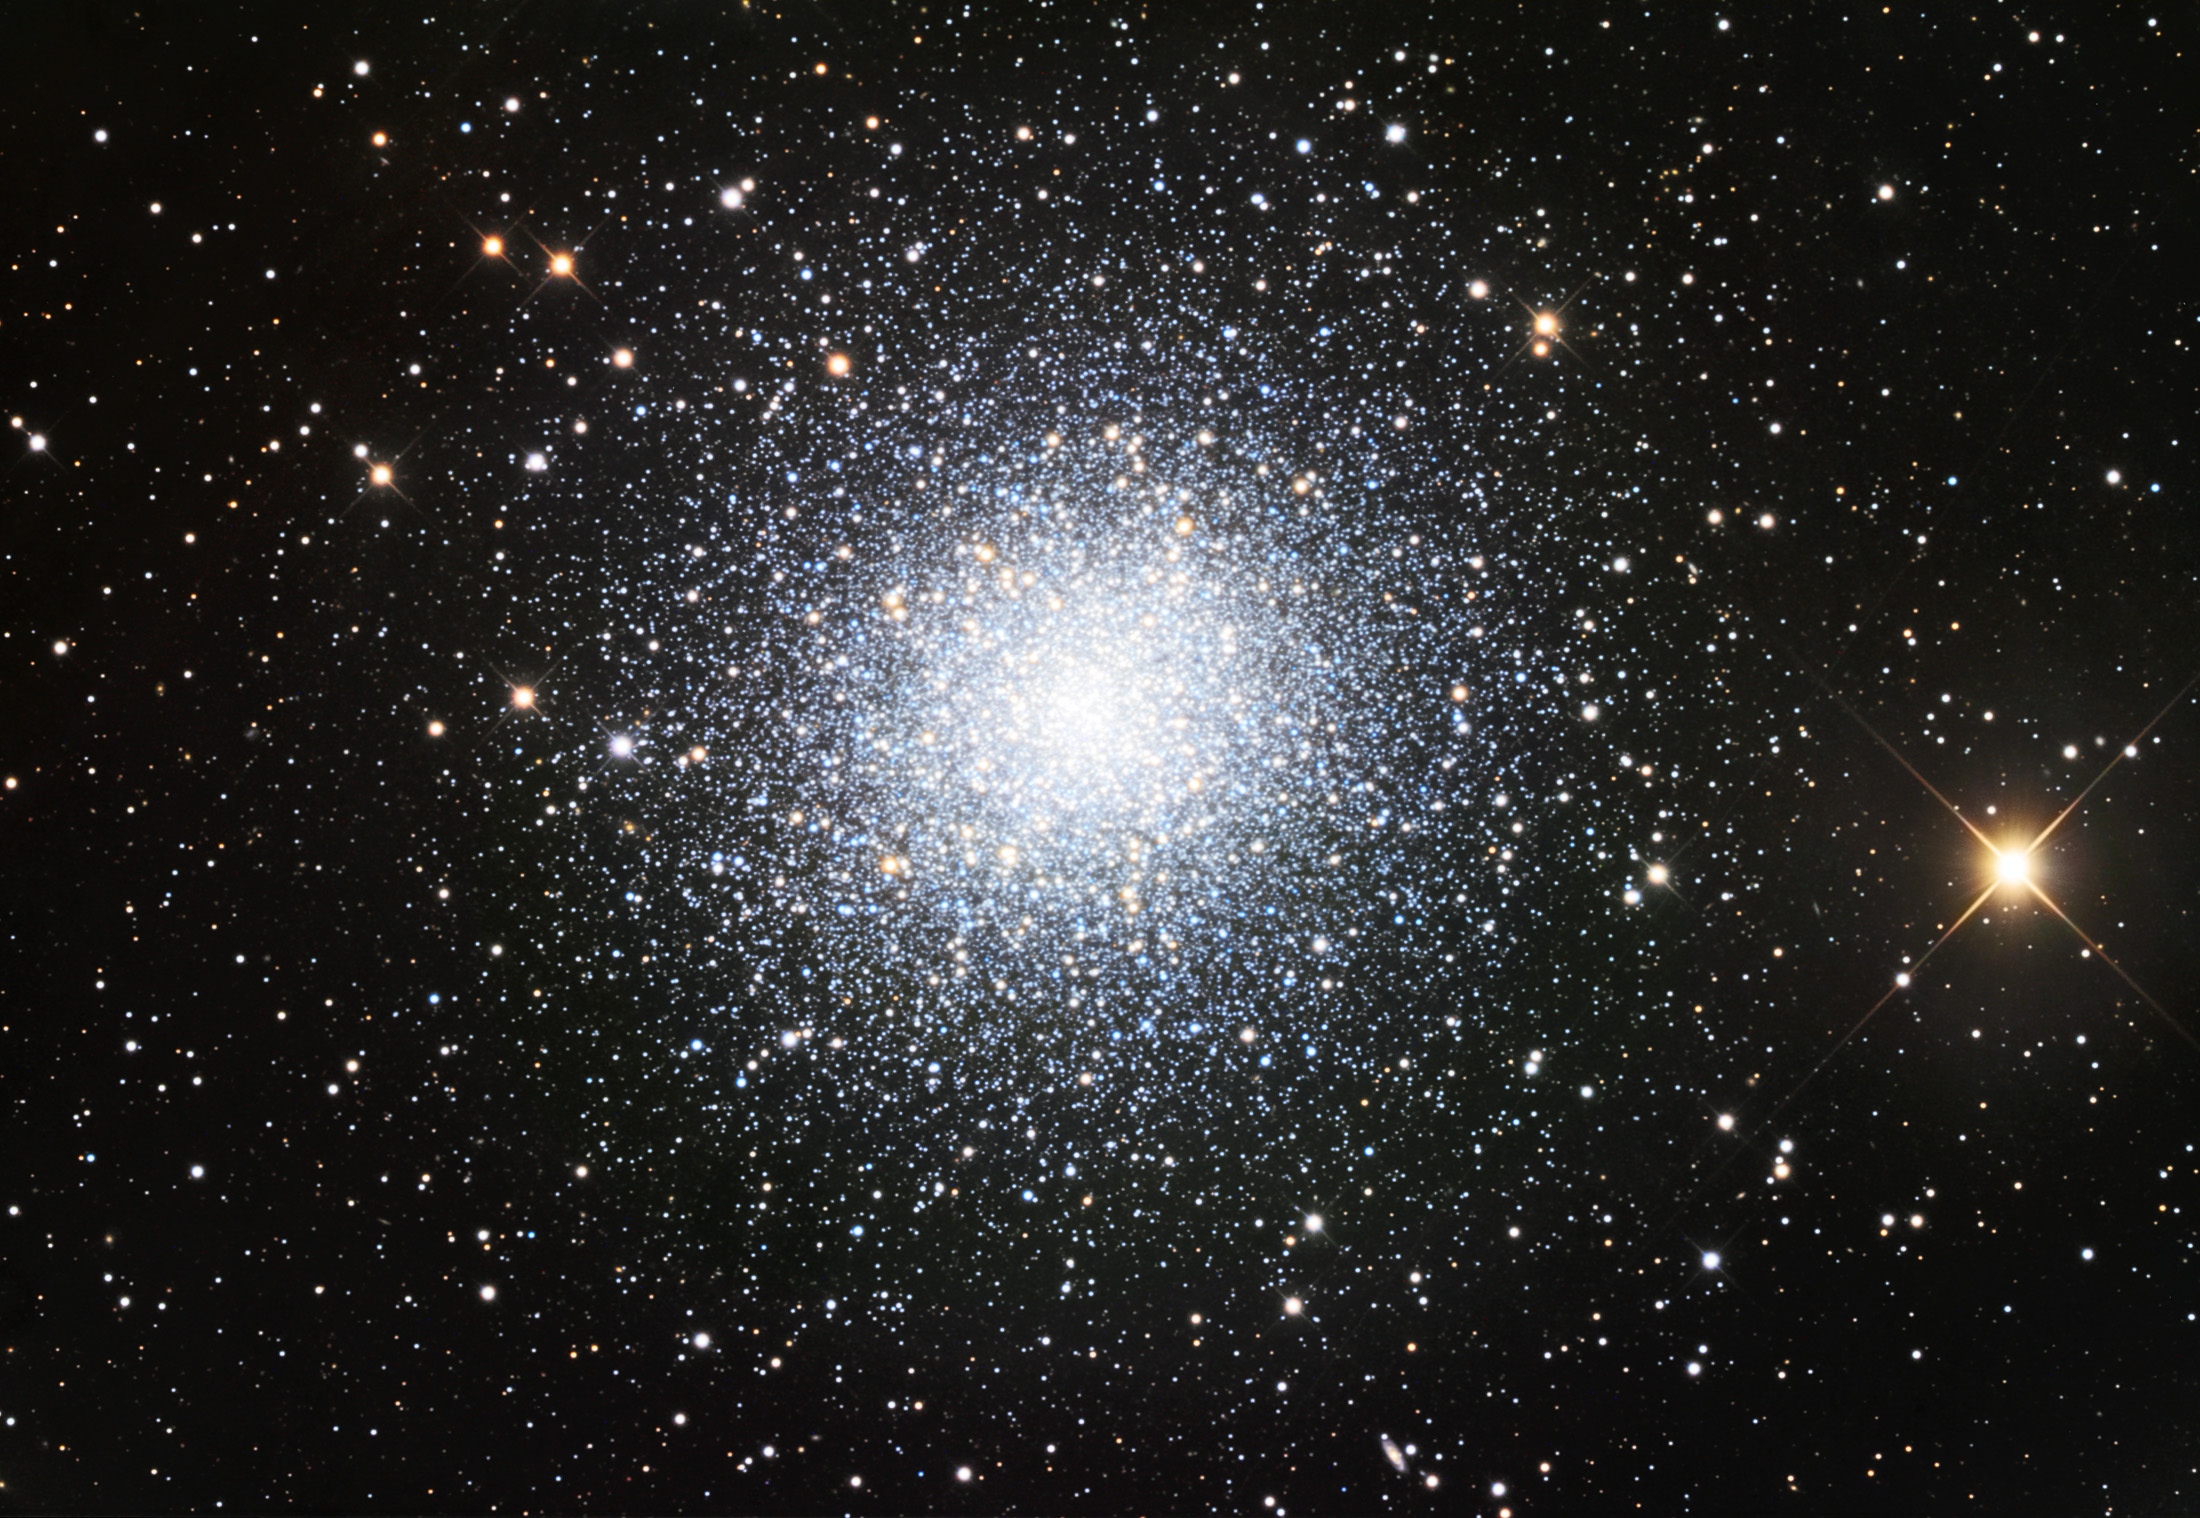 starcluster m13 - photo #27